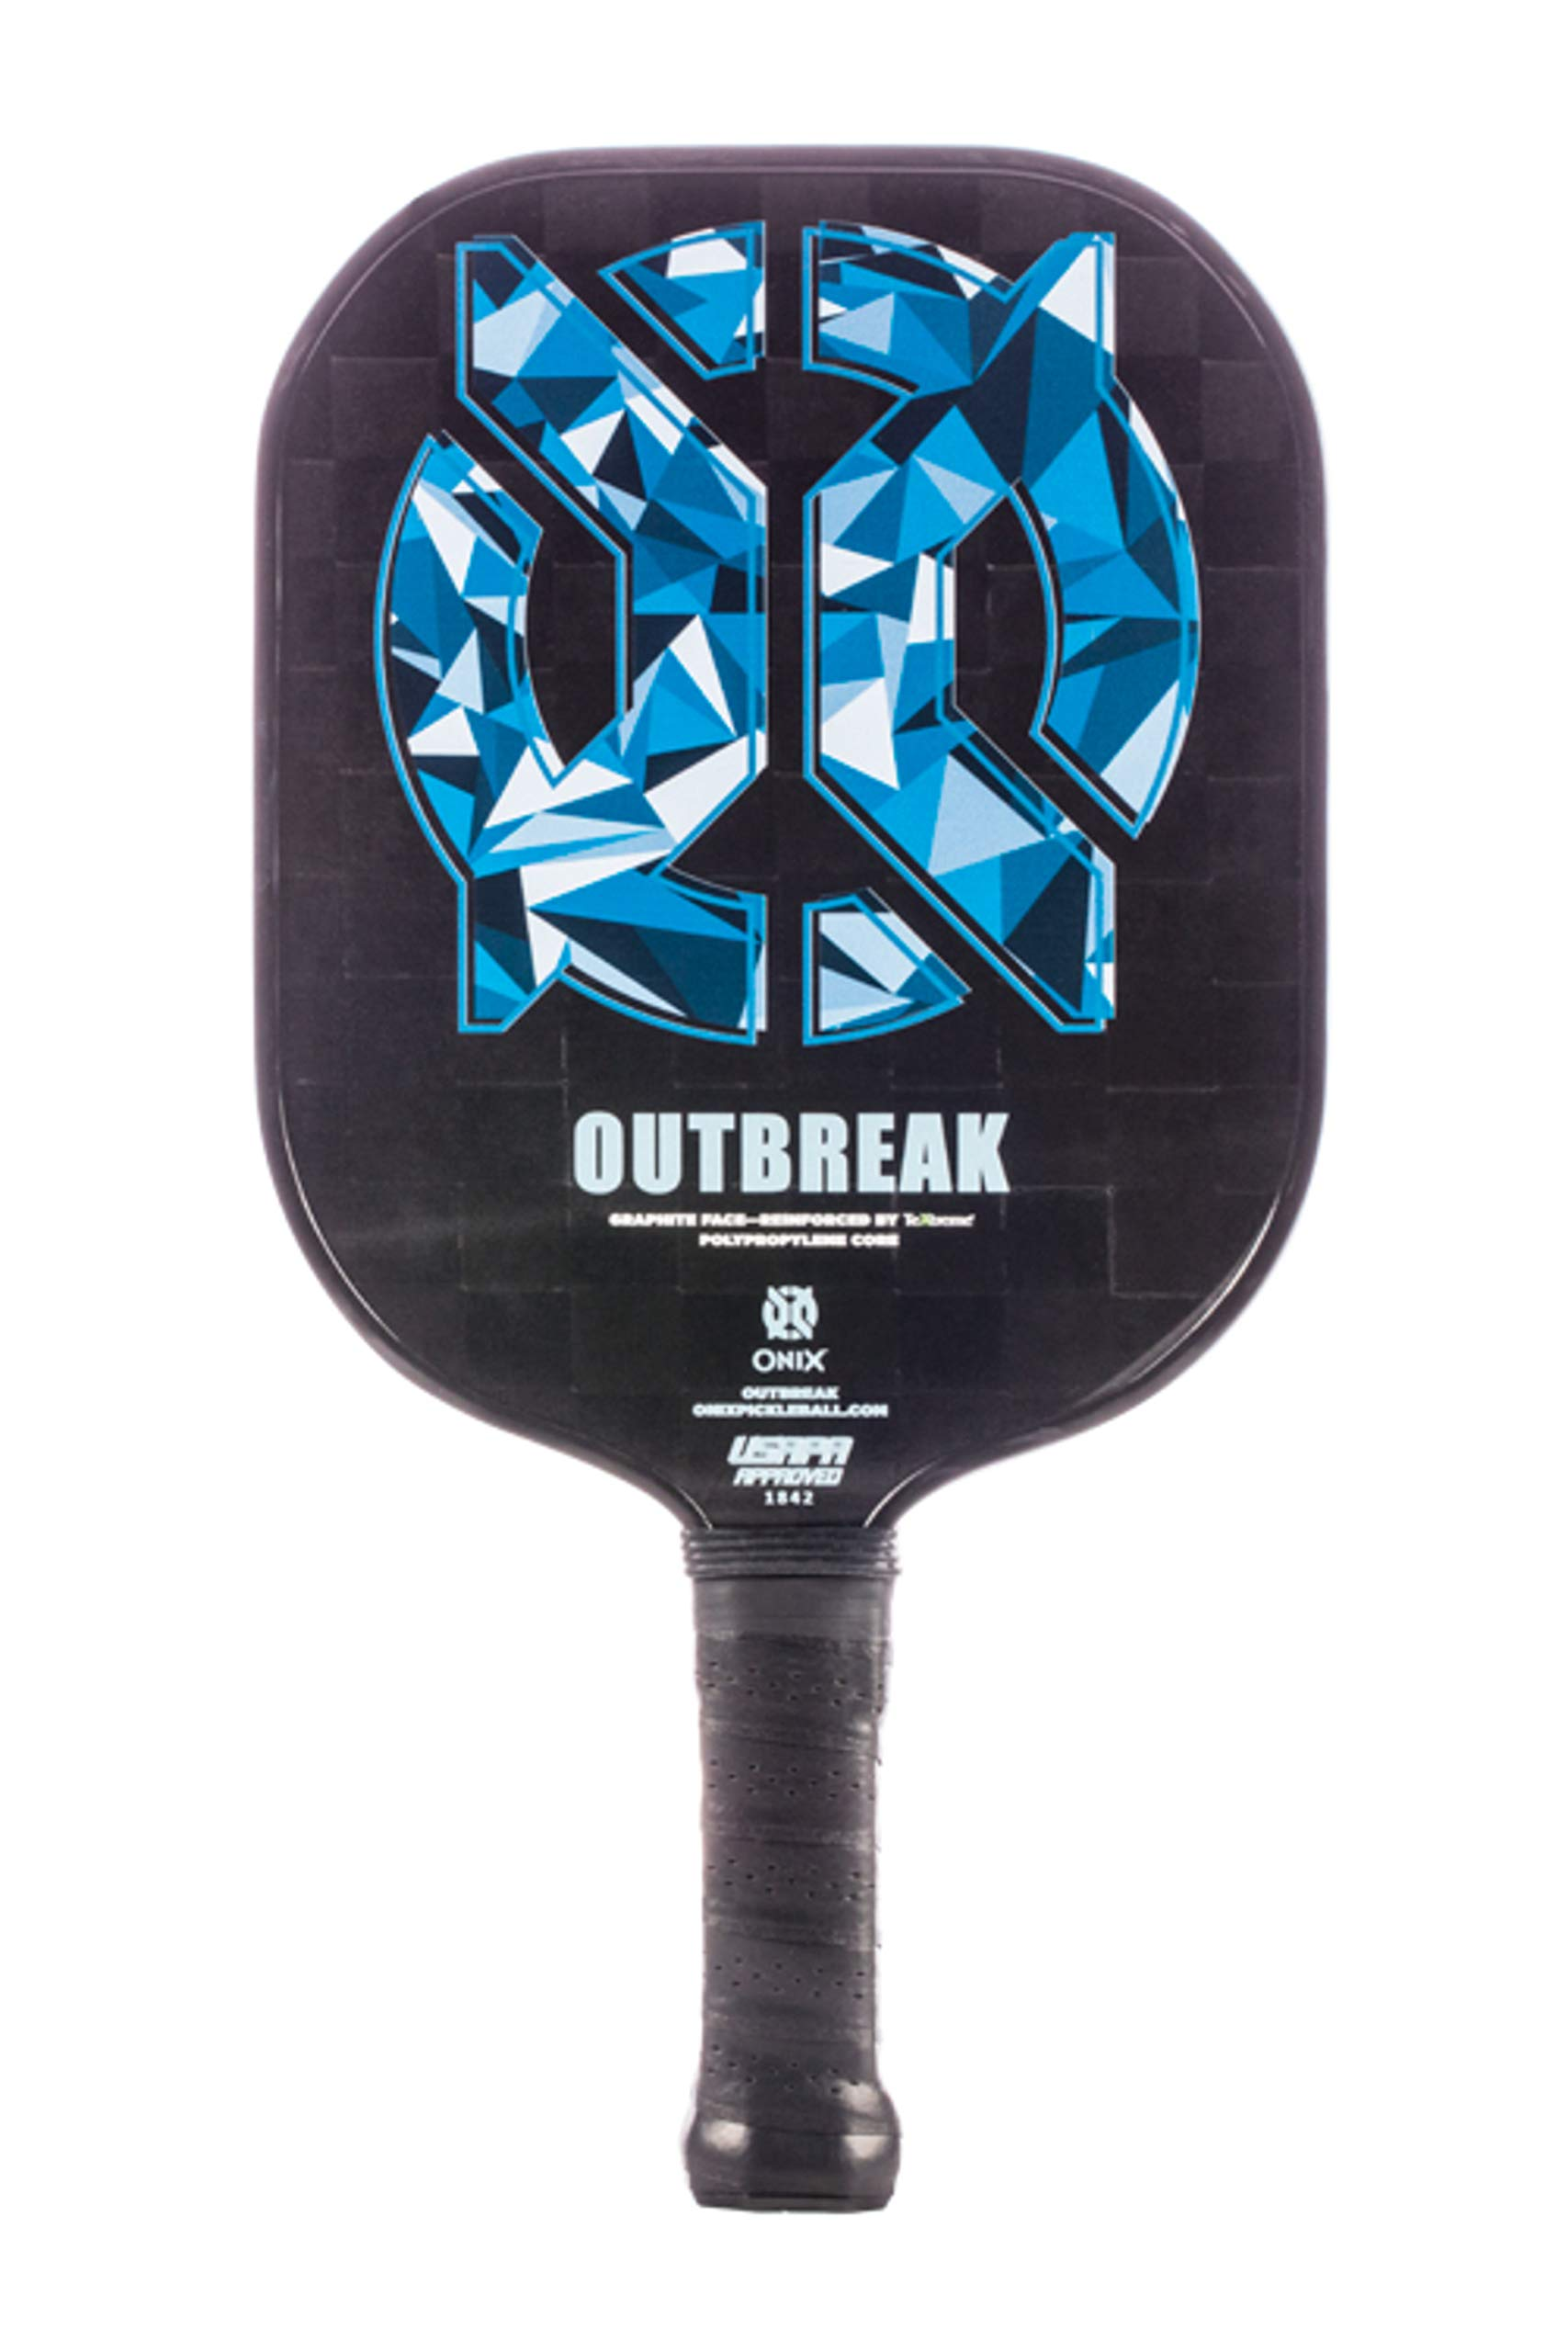 Onix Outbreak Pickleball Paddle Reinforced by TeXtreme Technology for Improved Performance and Stronger Play